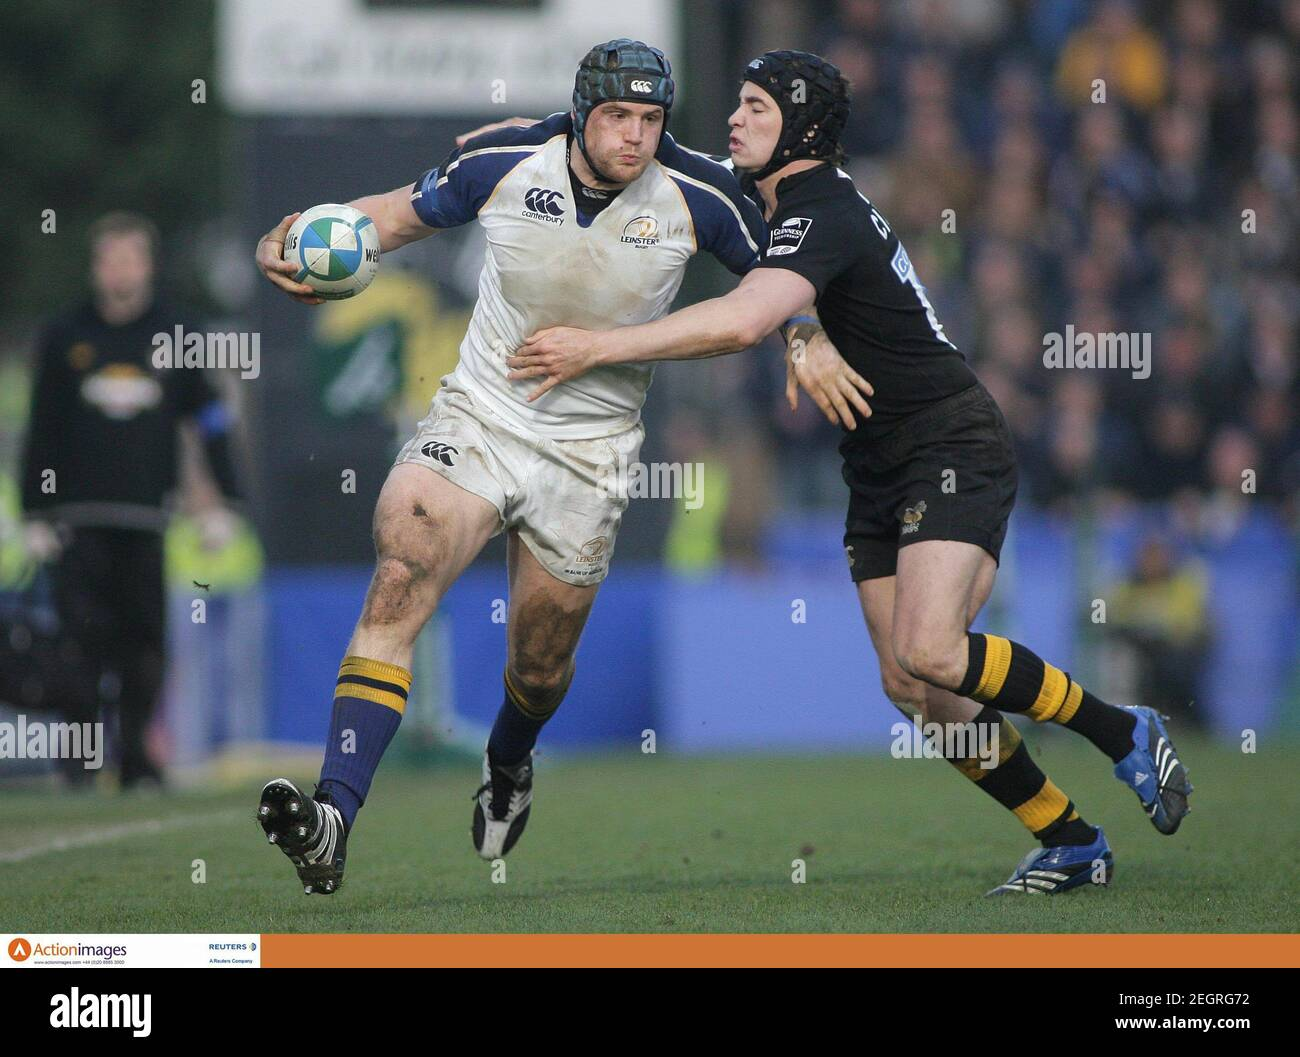 Trevor Hogan High Resolution Stock Photography and Images - Alamy